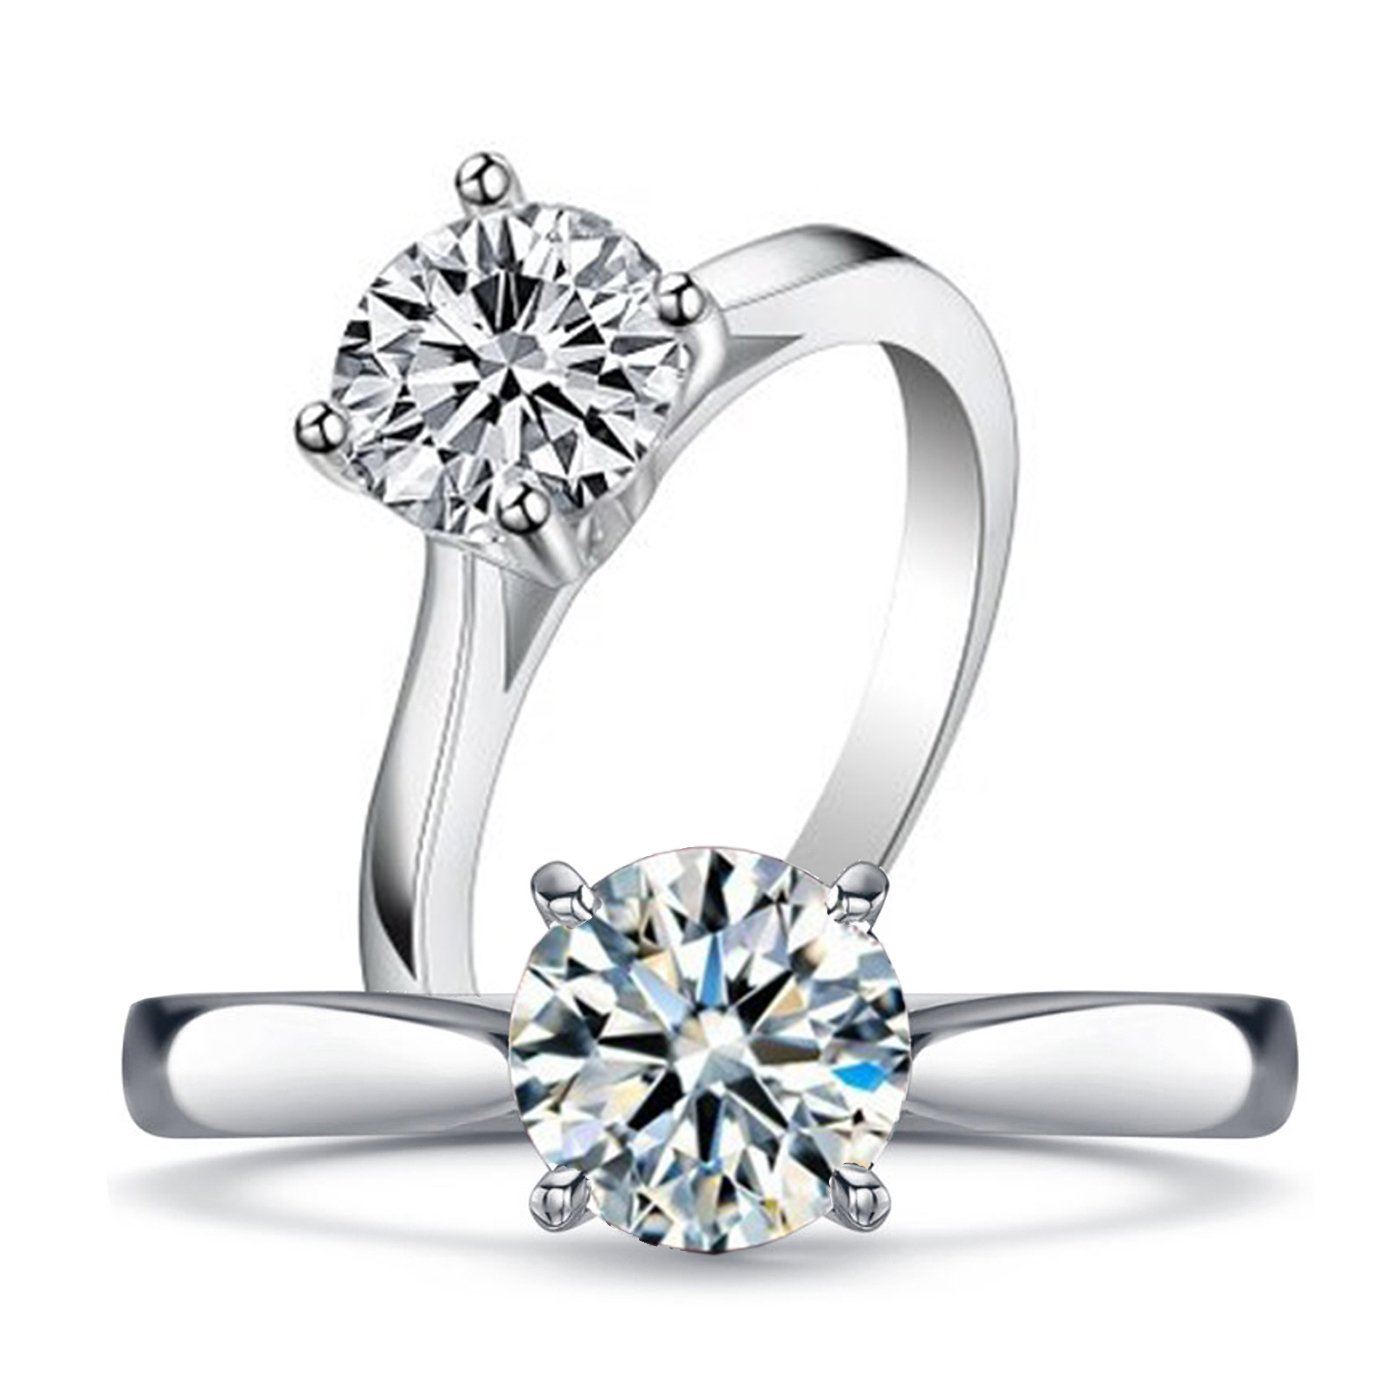 Venetia Top Grade Realistic Hearts and Arrows Cut 2.0 Carats Simulated Diamond Solitaire Ring 925 Silver Platinum Plated Promise Engagement cubic zirconia cz soli2-5